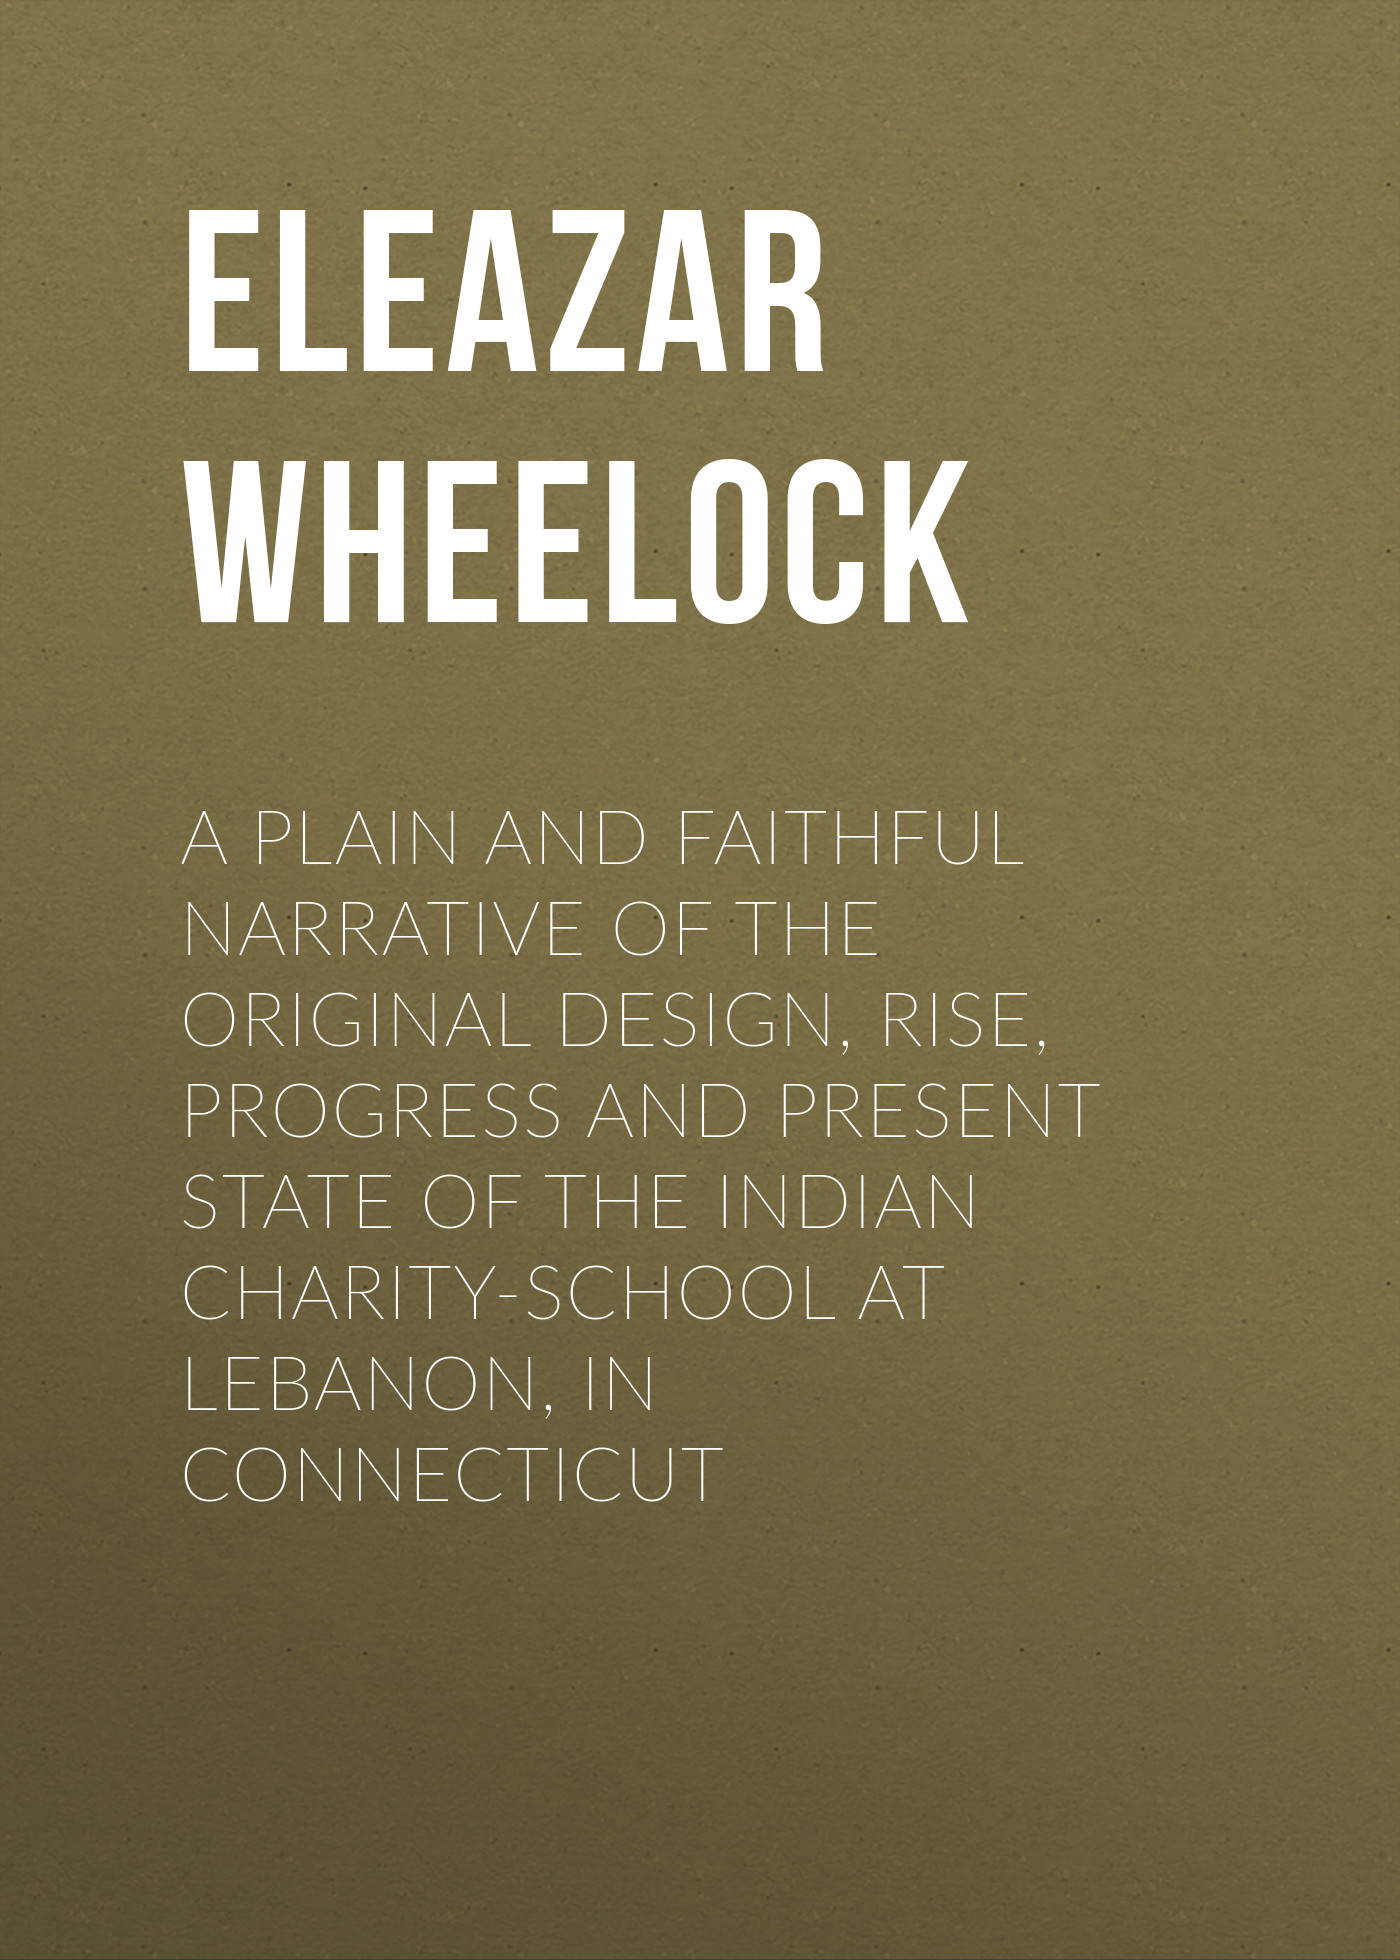 Eleazar Wheelock A plain and faithful narrative of the original design, rise, progress and present state of the Indian charity-school at Lebanon, in Connecticut mechanism and source mineral releasing fluoride in groundwater of indo gangetic plain